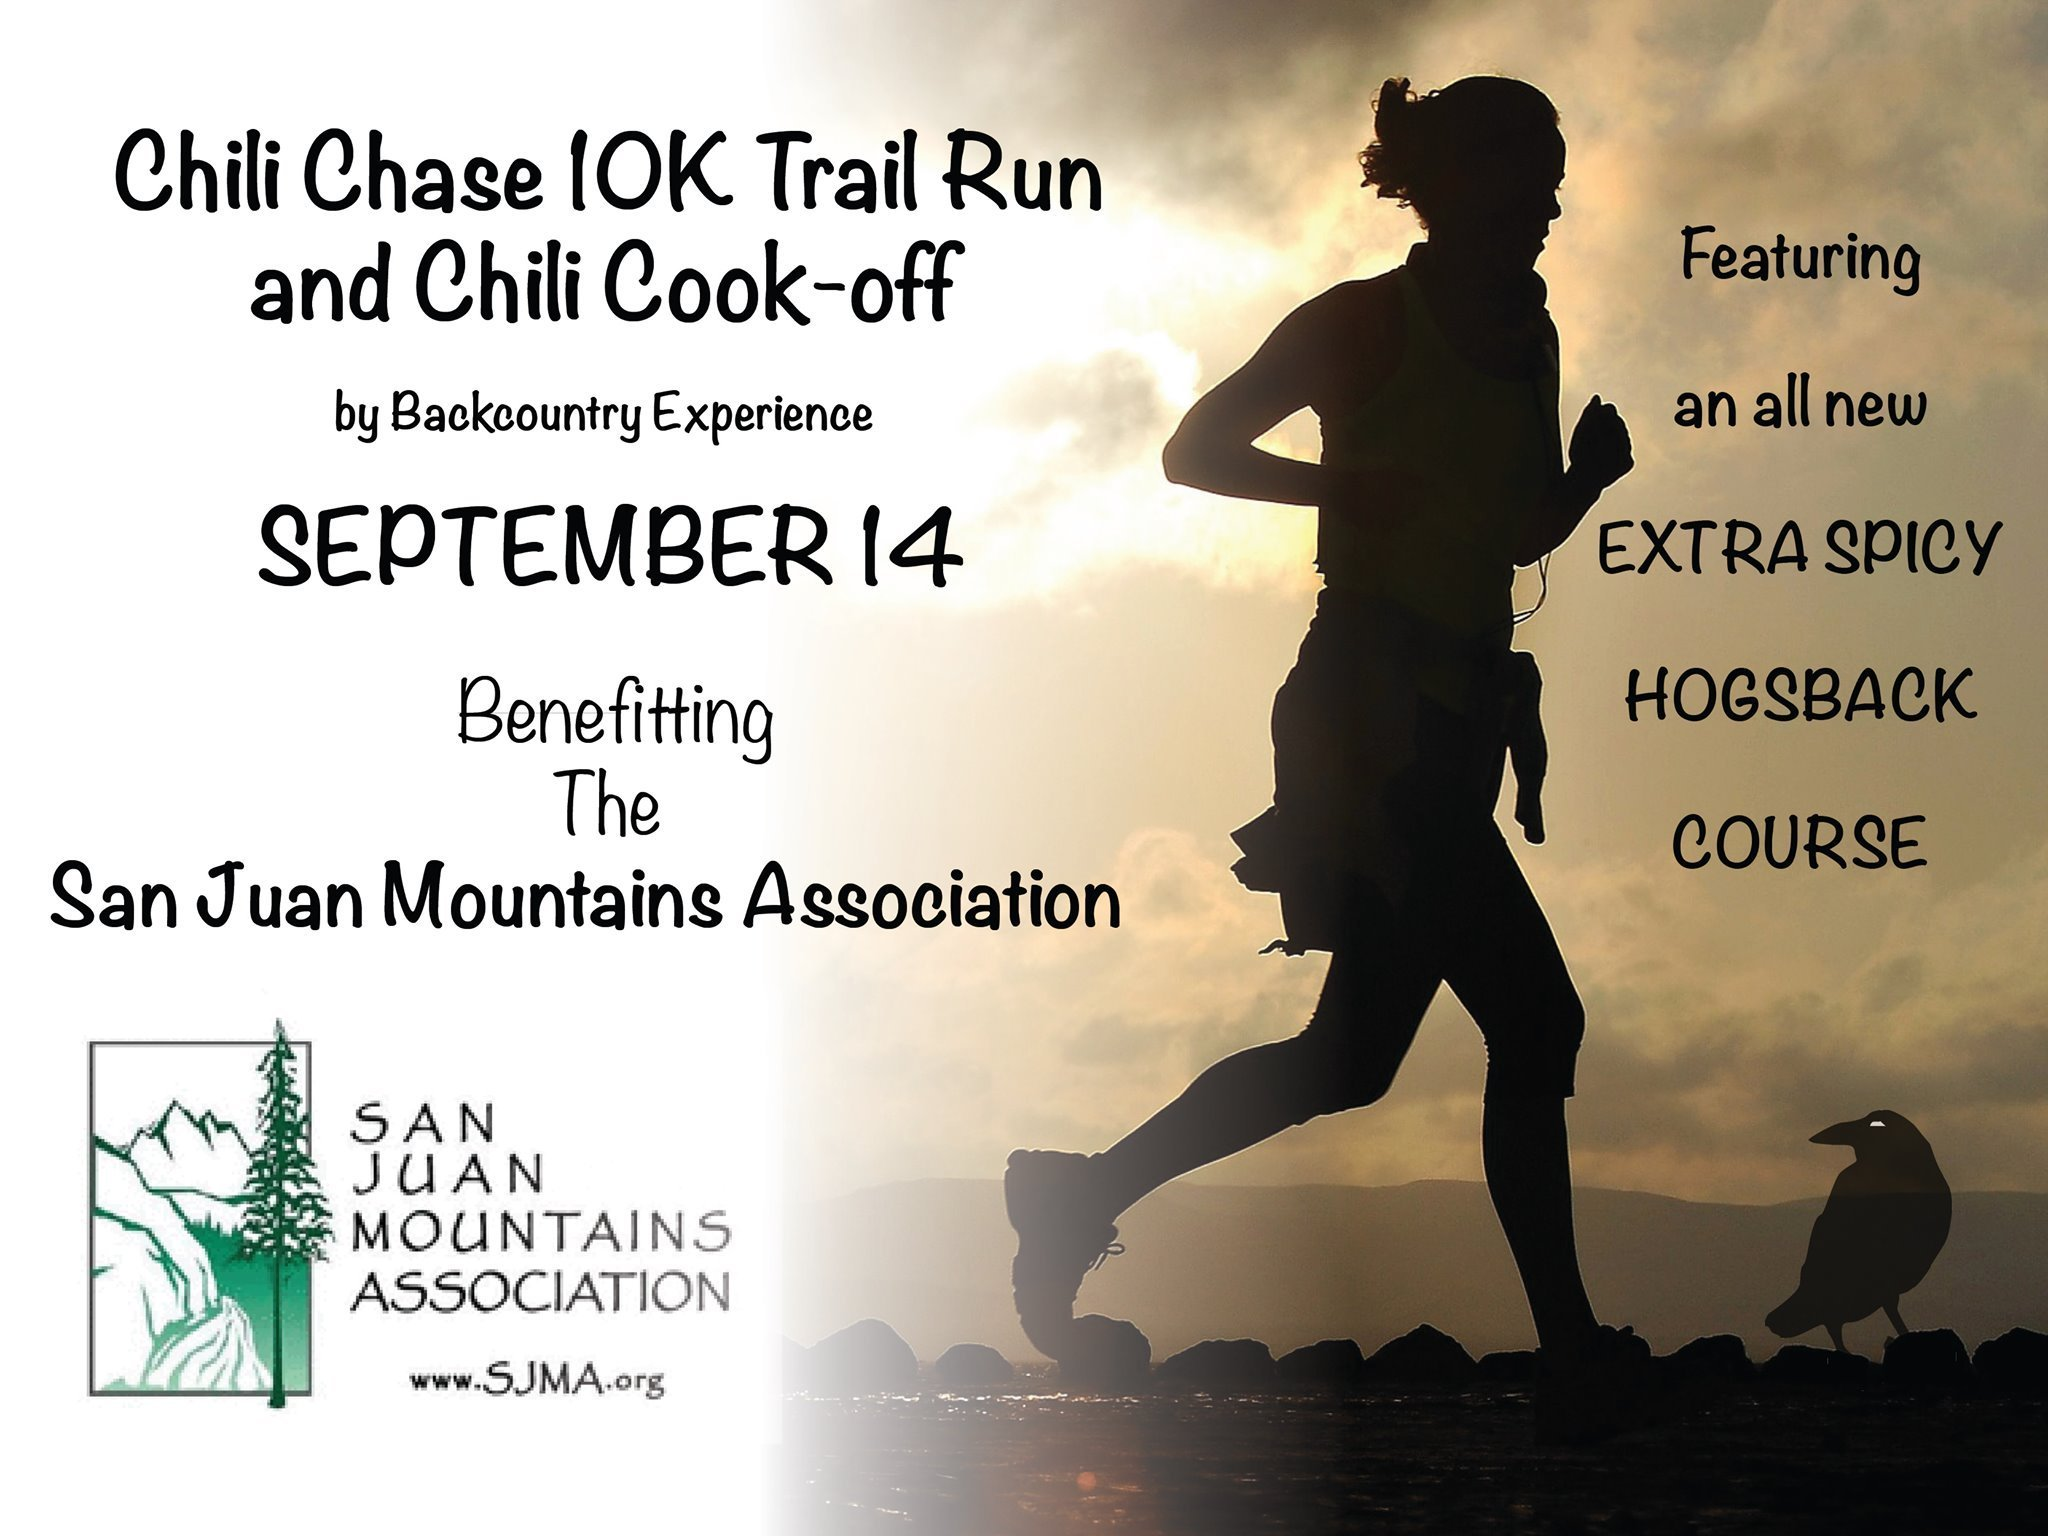 2019 Chili Chase 10K Trail Run and Cook Off